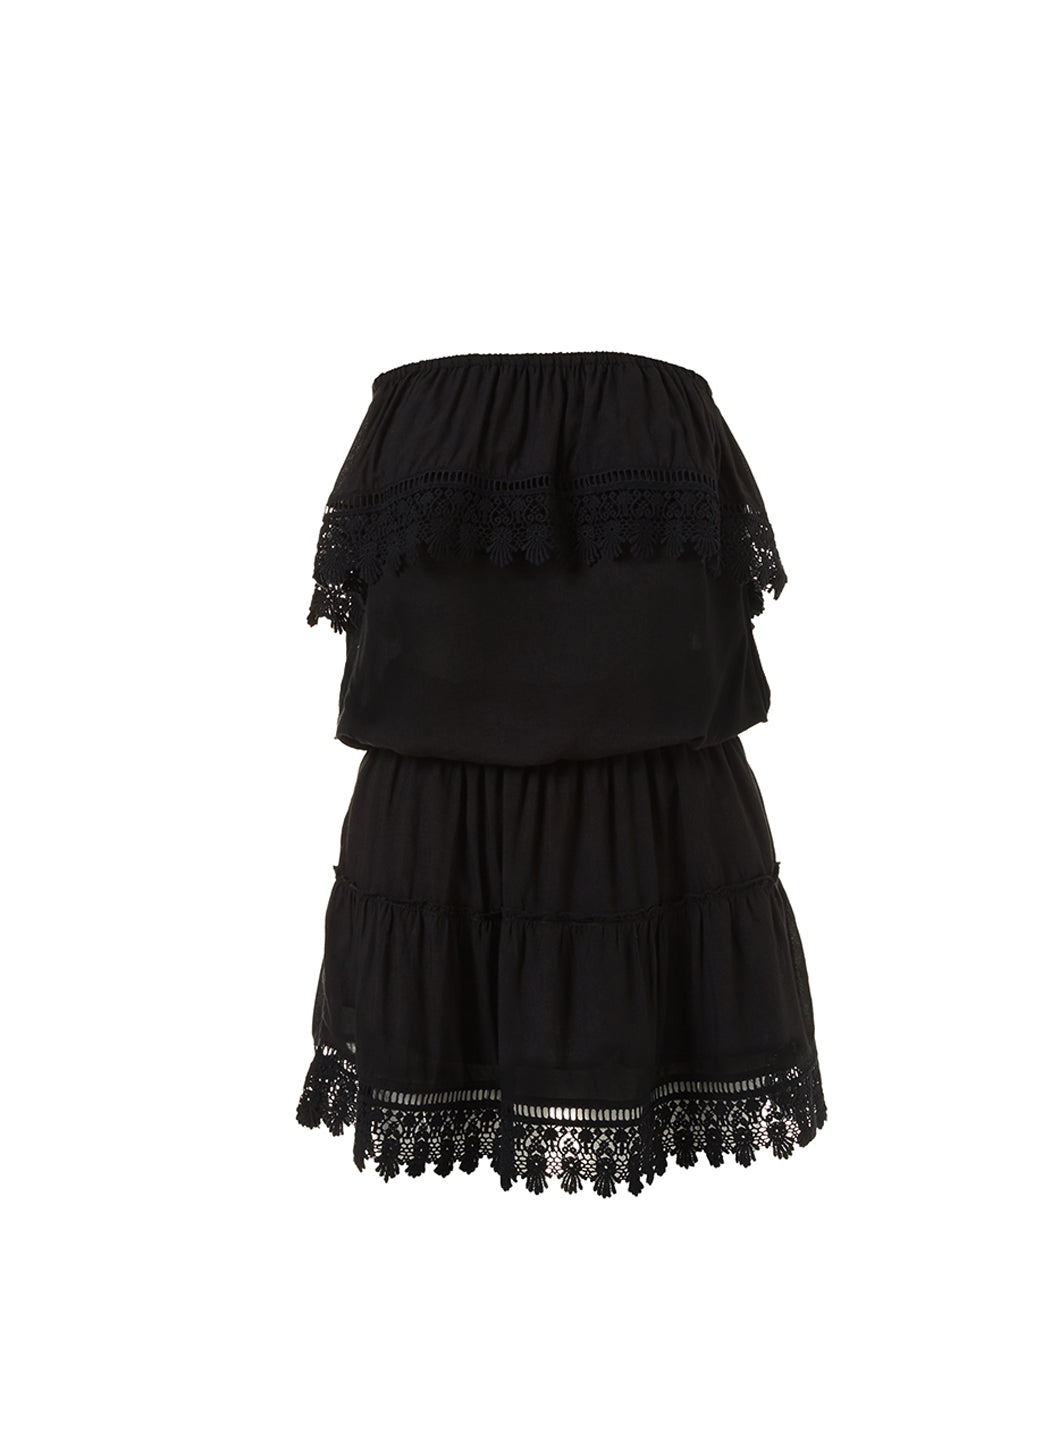 Joy Black Bandeau Embroidered Frill Short Dress - Melissa Odabash Beachwear